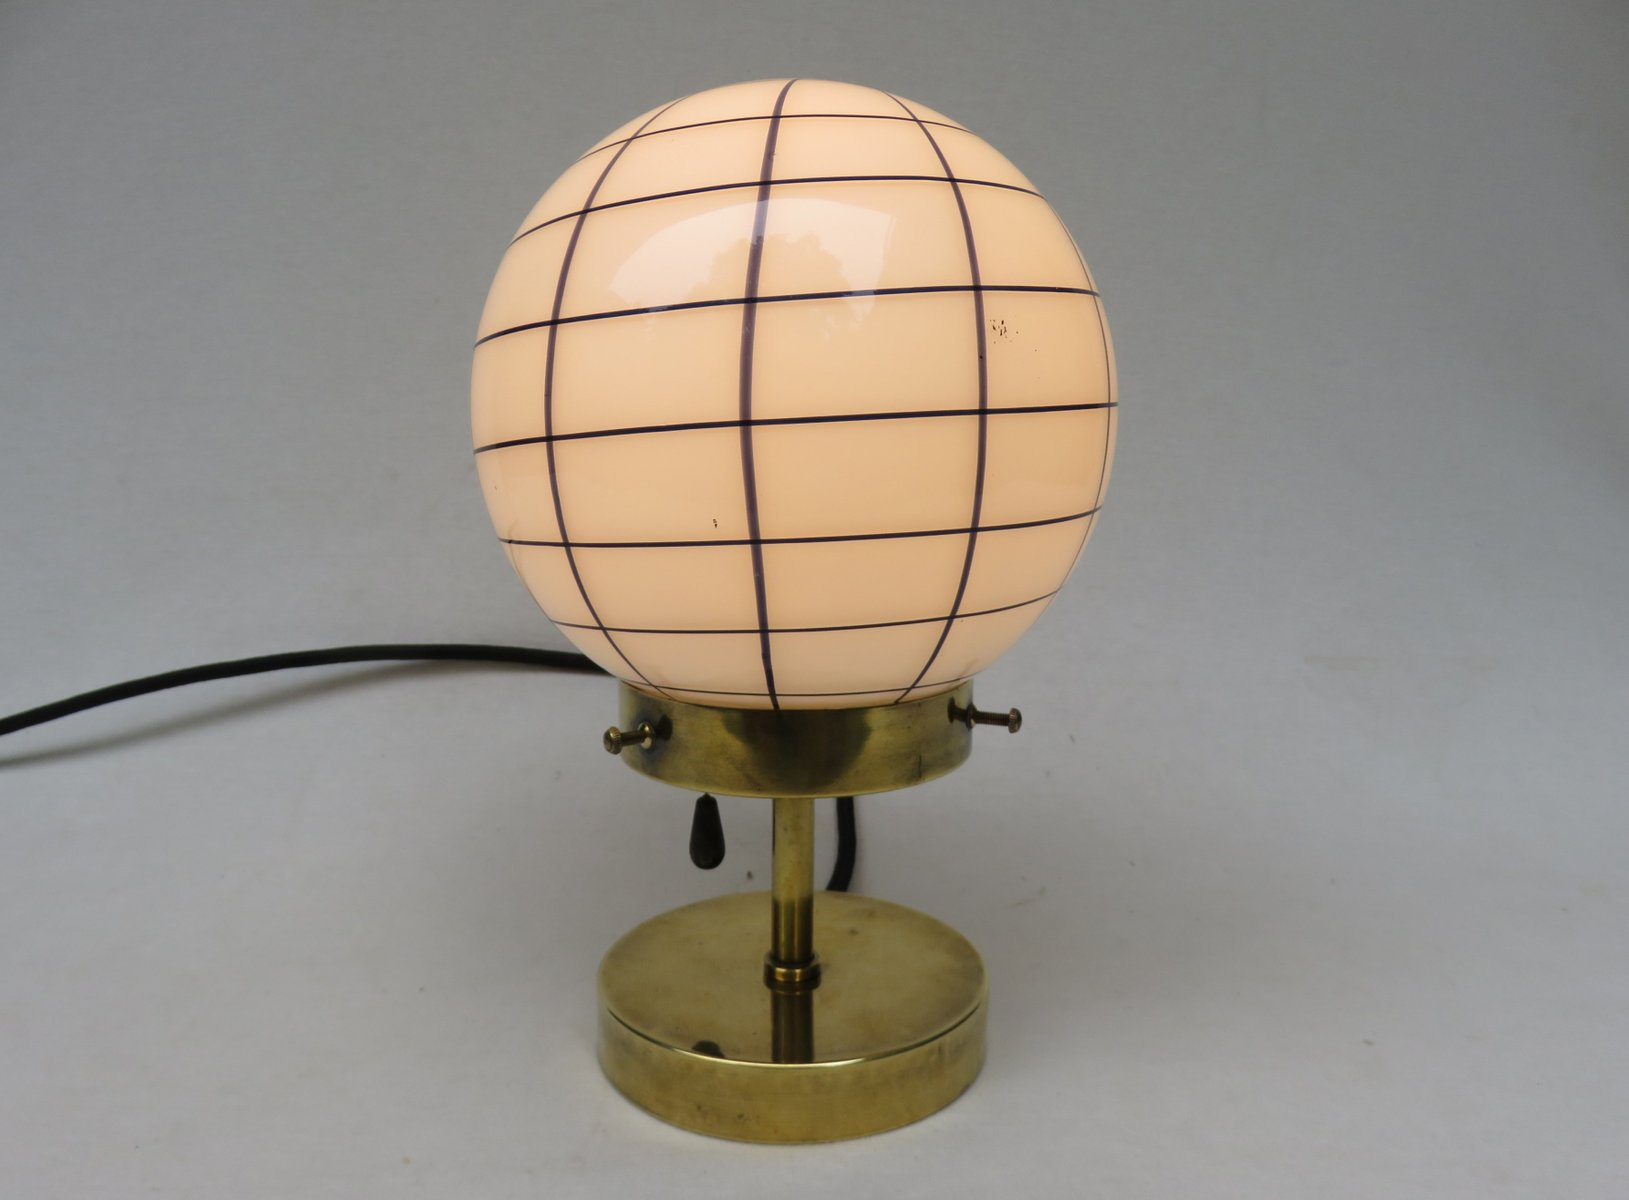 Vintage small art deco brass table lamp for sale at pamono vintage small art deco brass table lamp 17 125000 geotapseo Choice Image